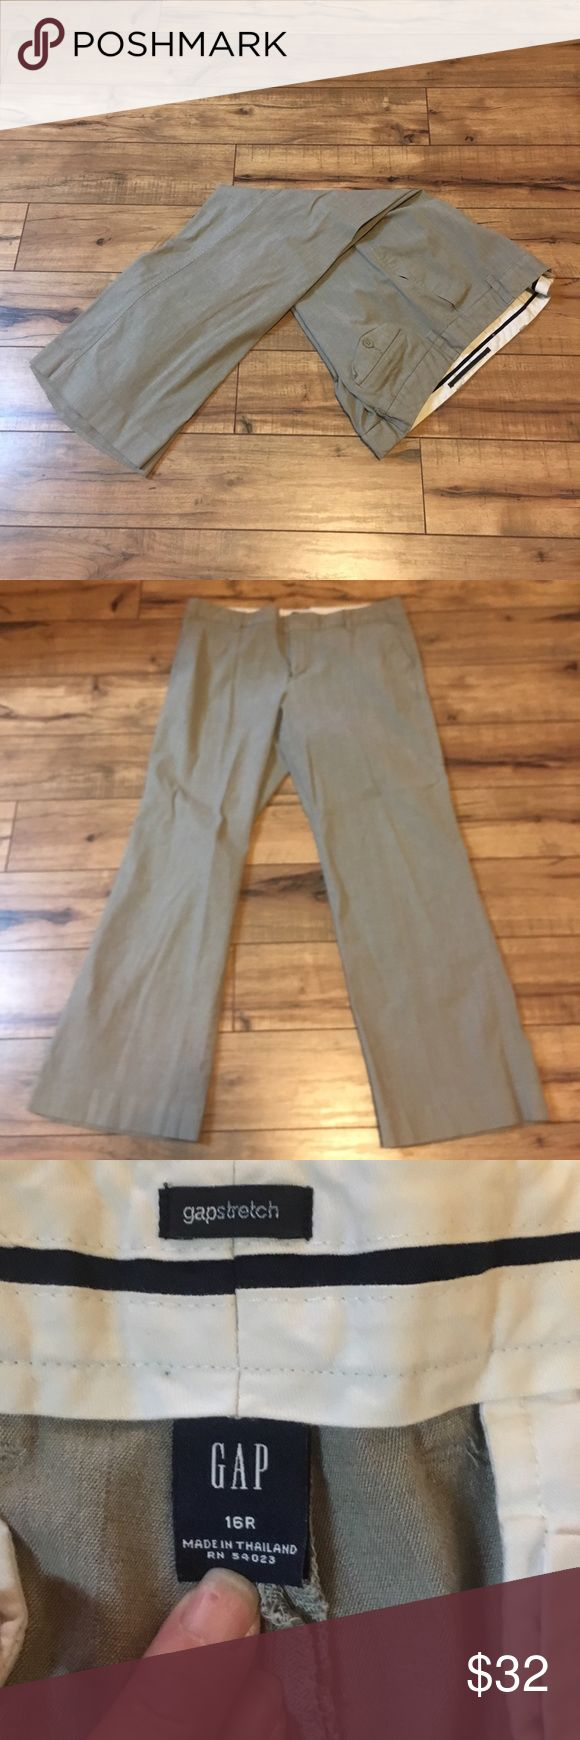 Women's gap trousers tan size 16 Super cute trouser to wear to work luv them lost a lot of weight to big ;) GAP Pants Trousers